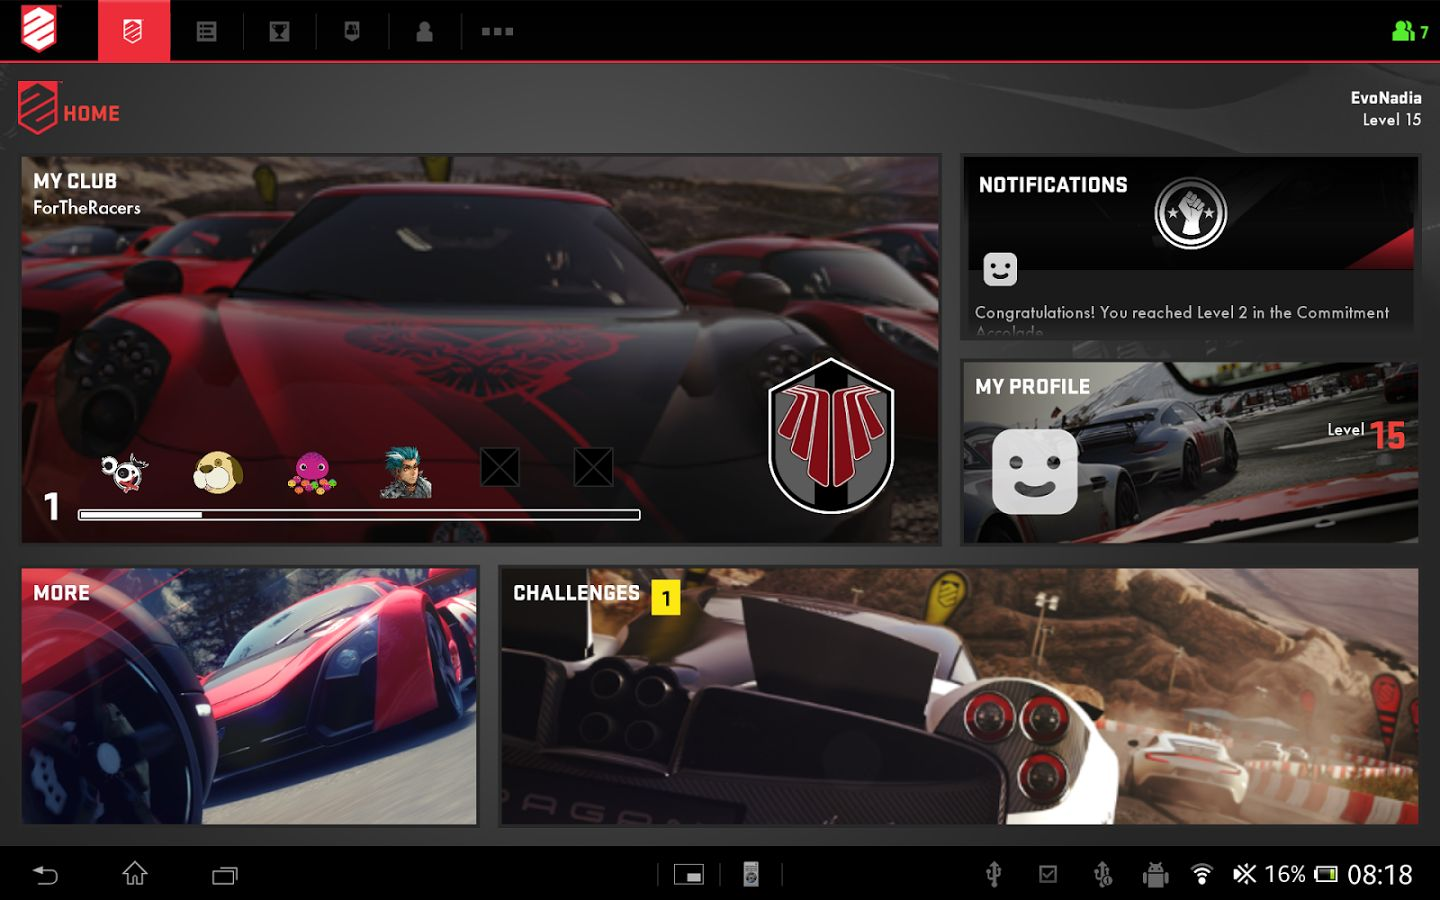 Sony Republishes Driveclub Companion App Over A Year After The